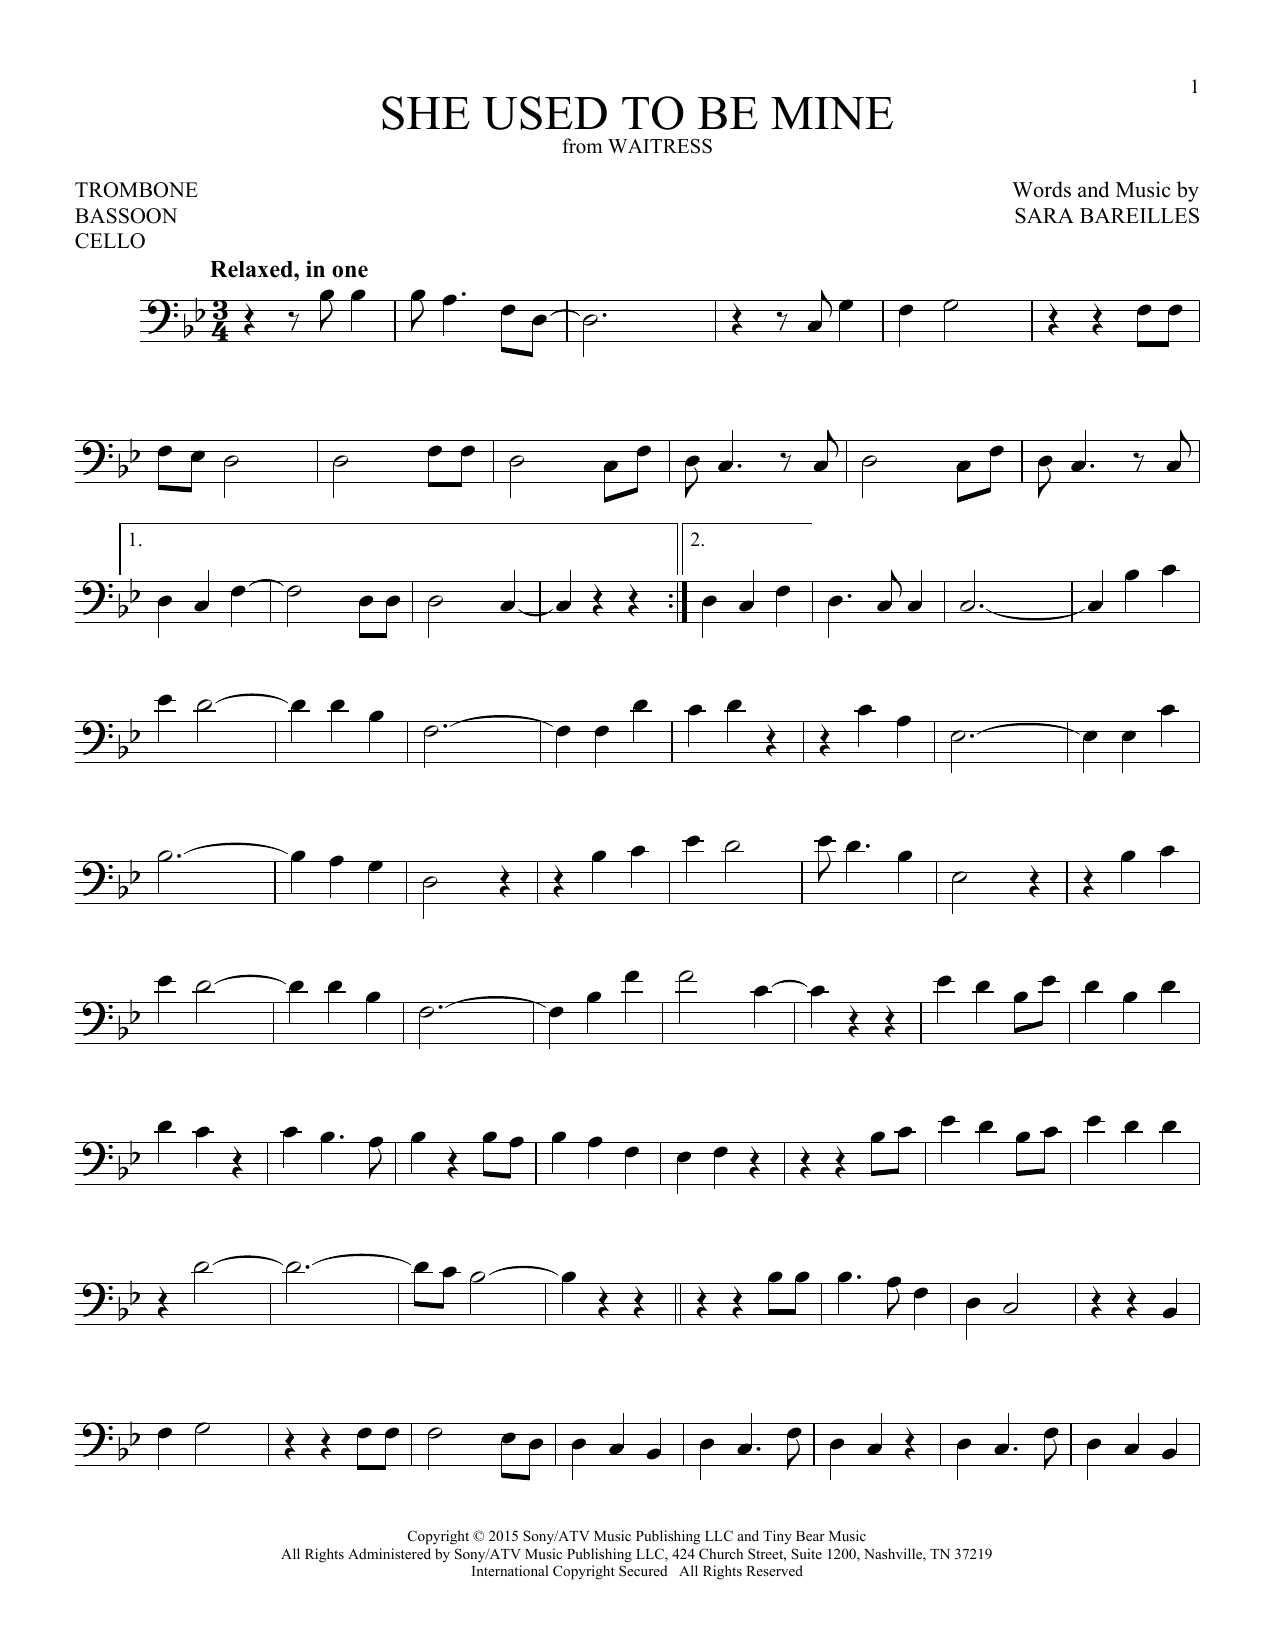 Sara Bareilles She Used To Be Mine (from Waitress) sheet music notes and chords. Download Printable PDF.